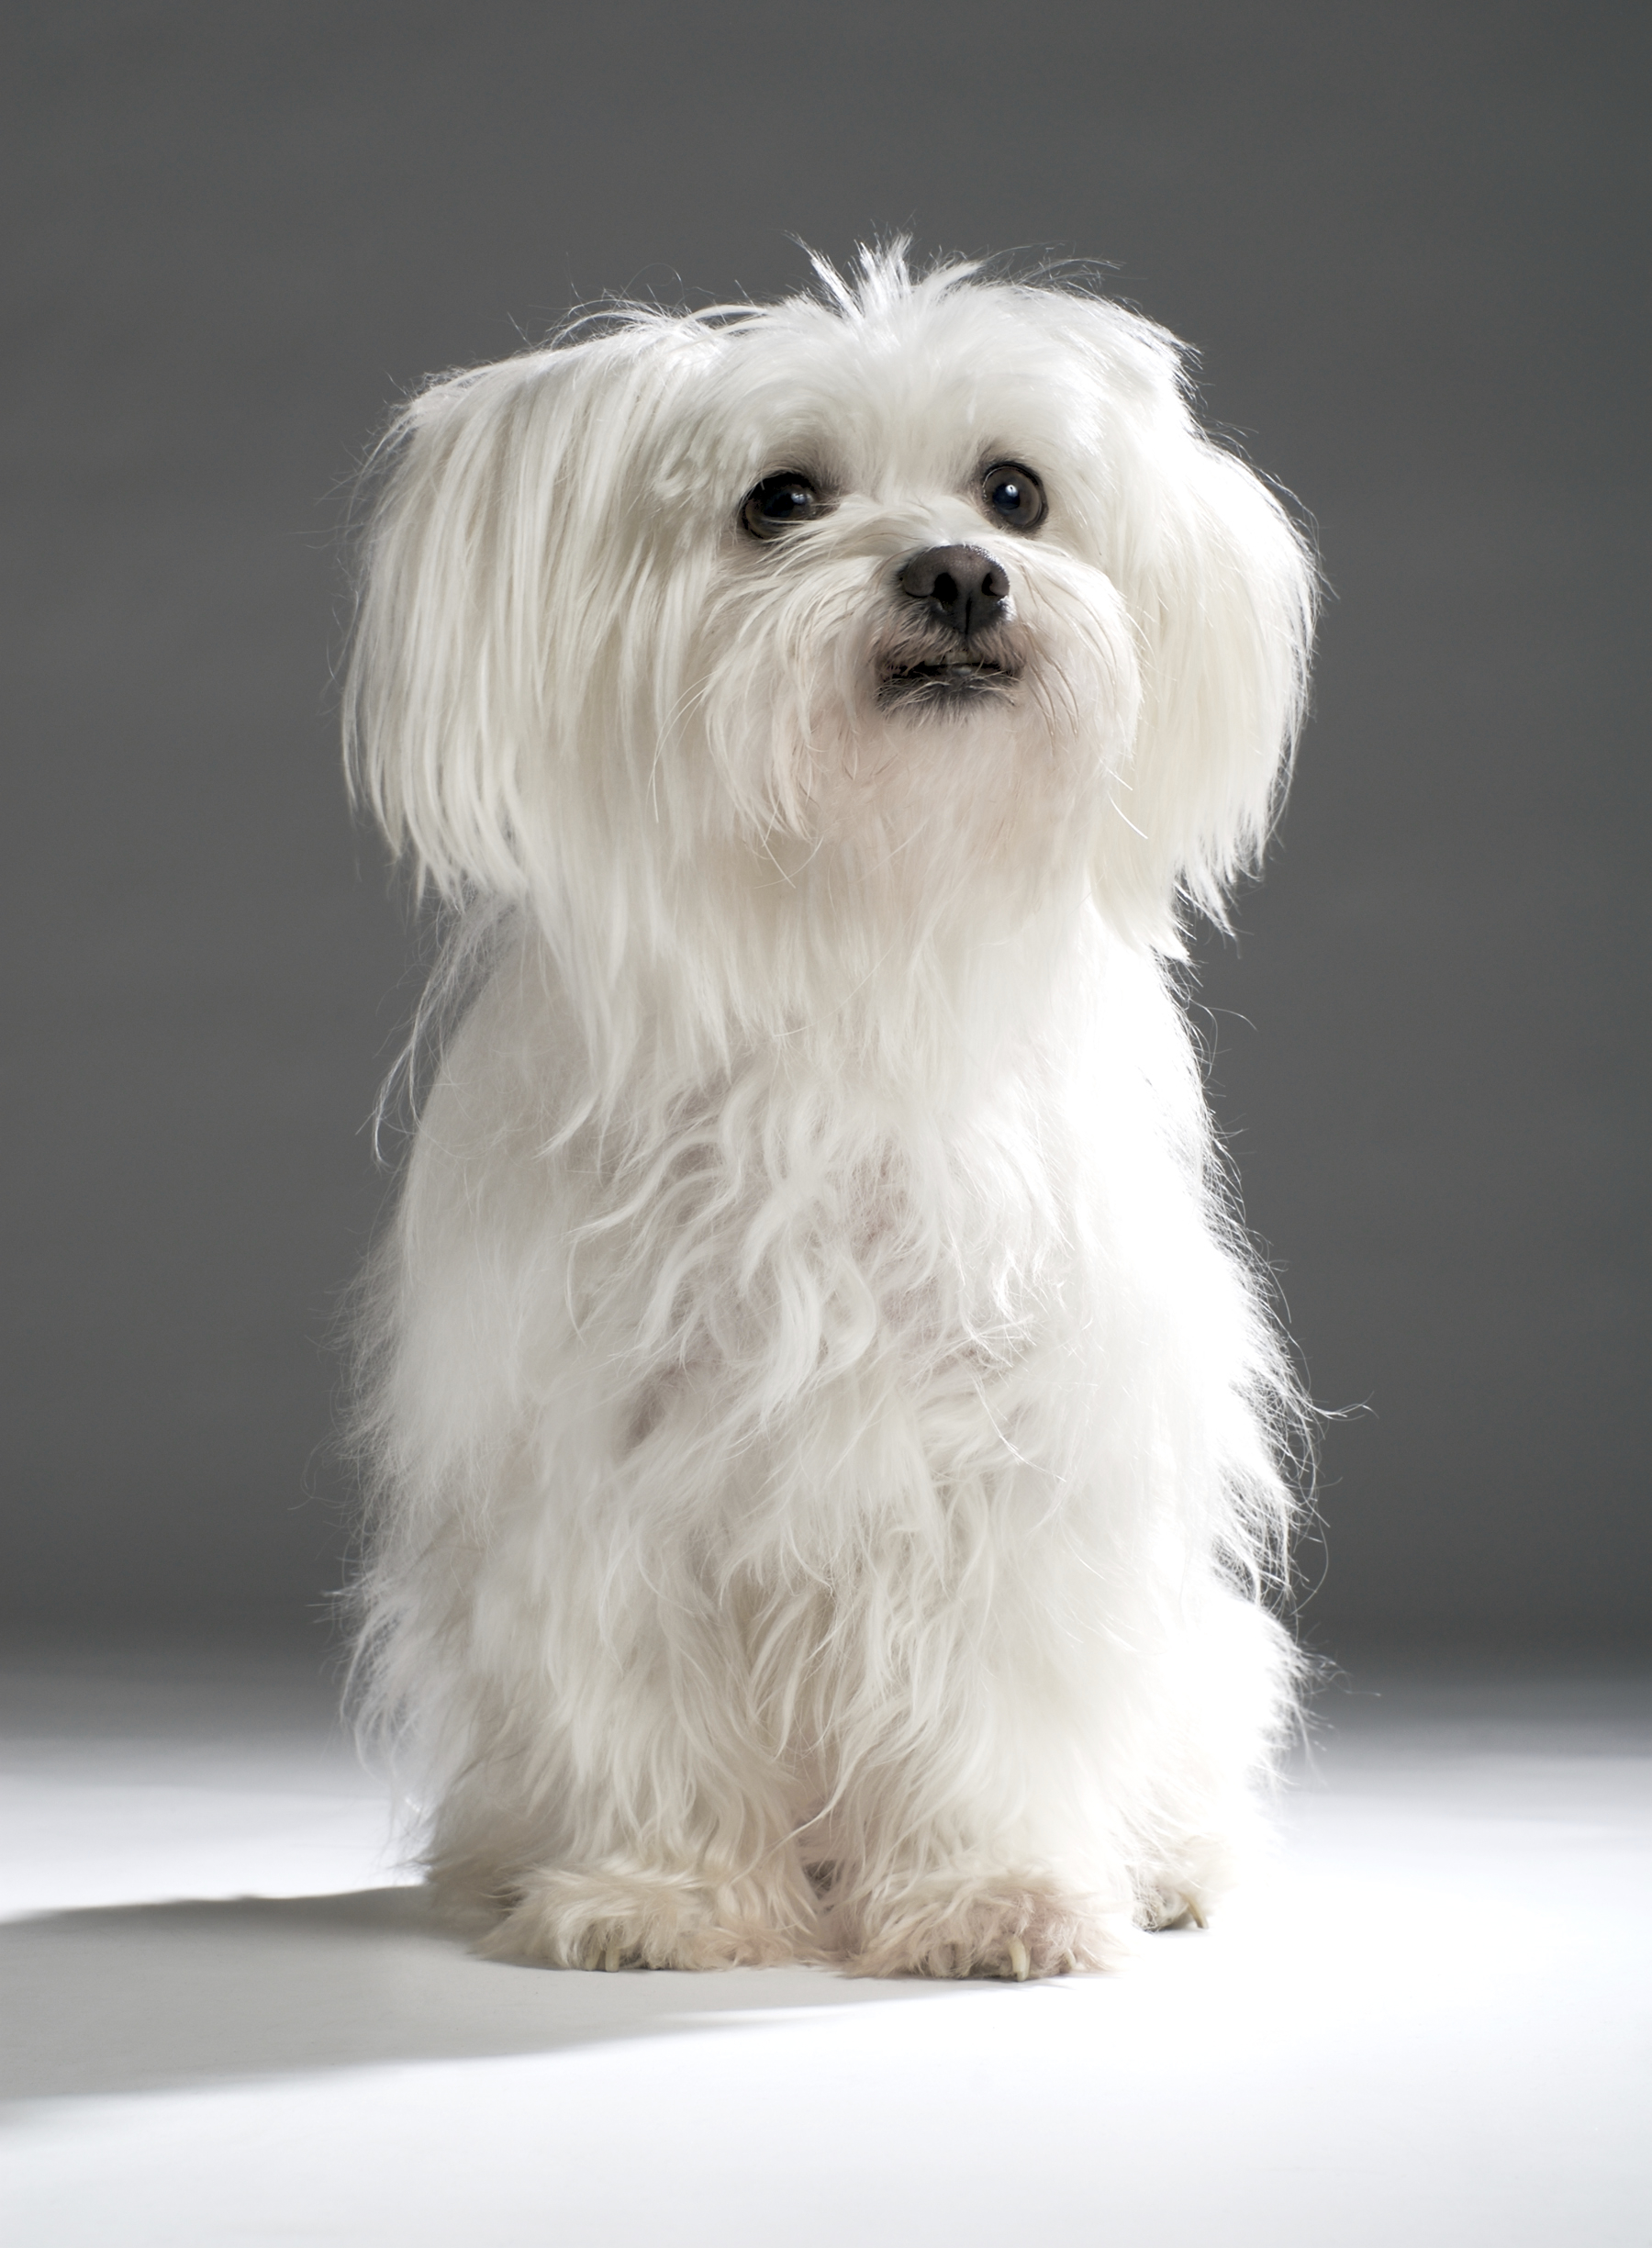 Studio shot of a white Maltese terrier isolated on a dark background.